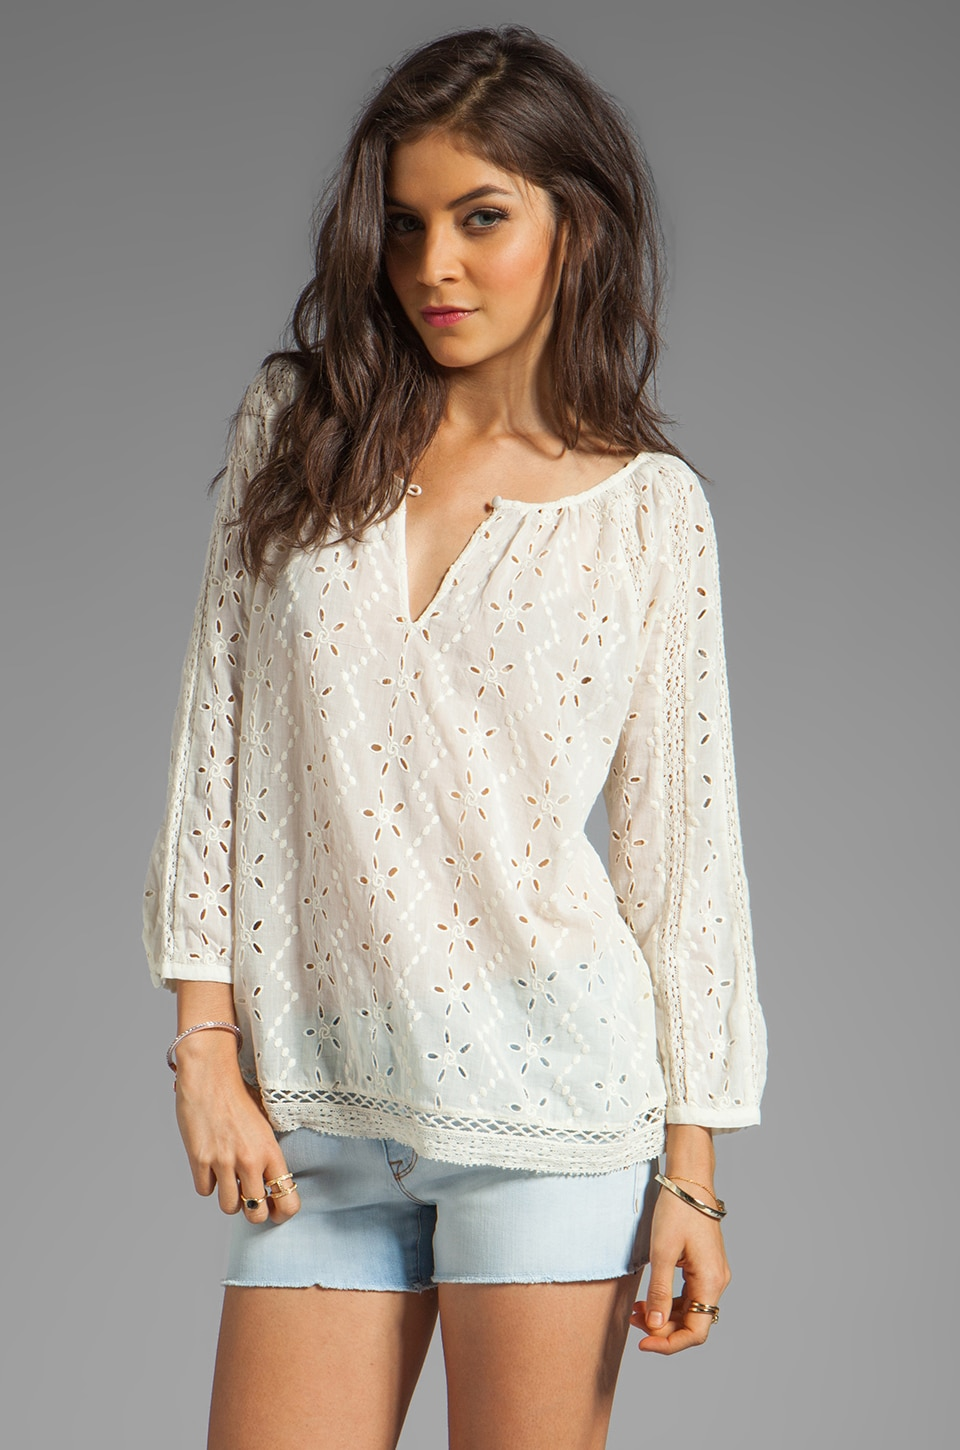 Joie Hansel Eyelet Blouse in Porcelain